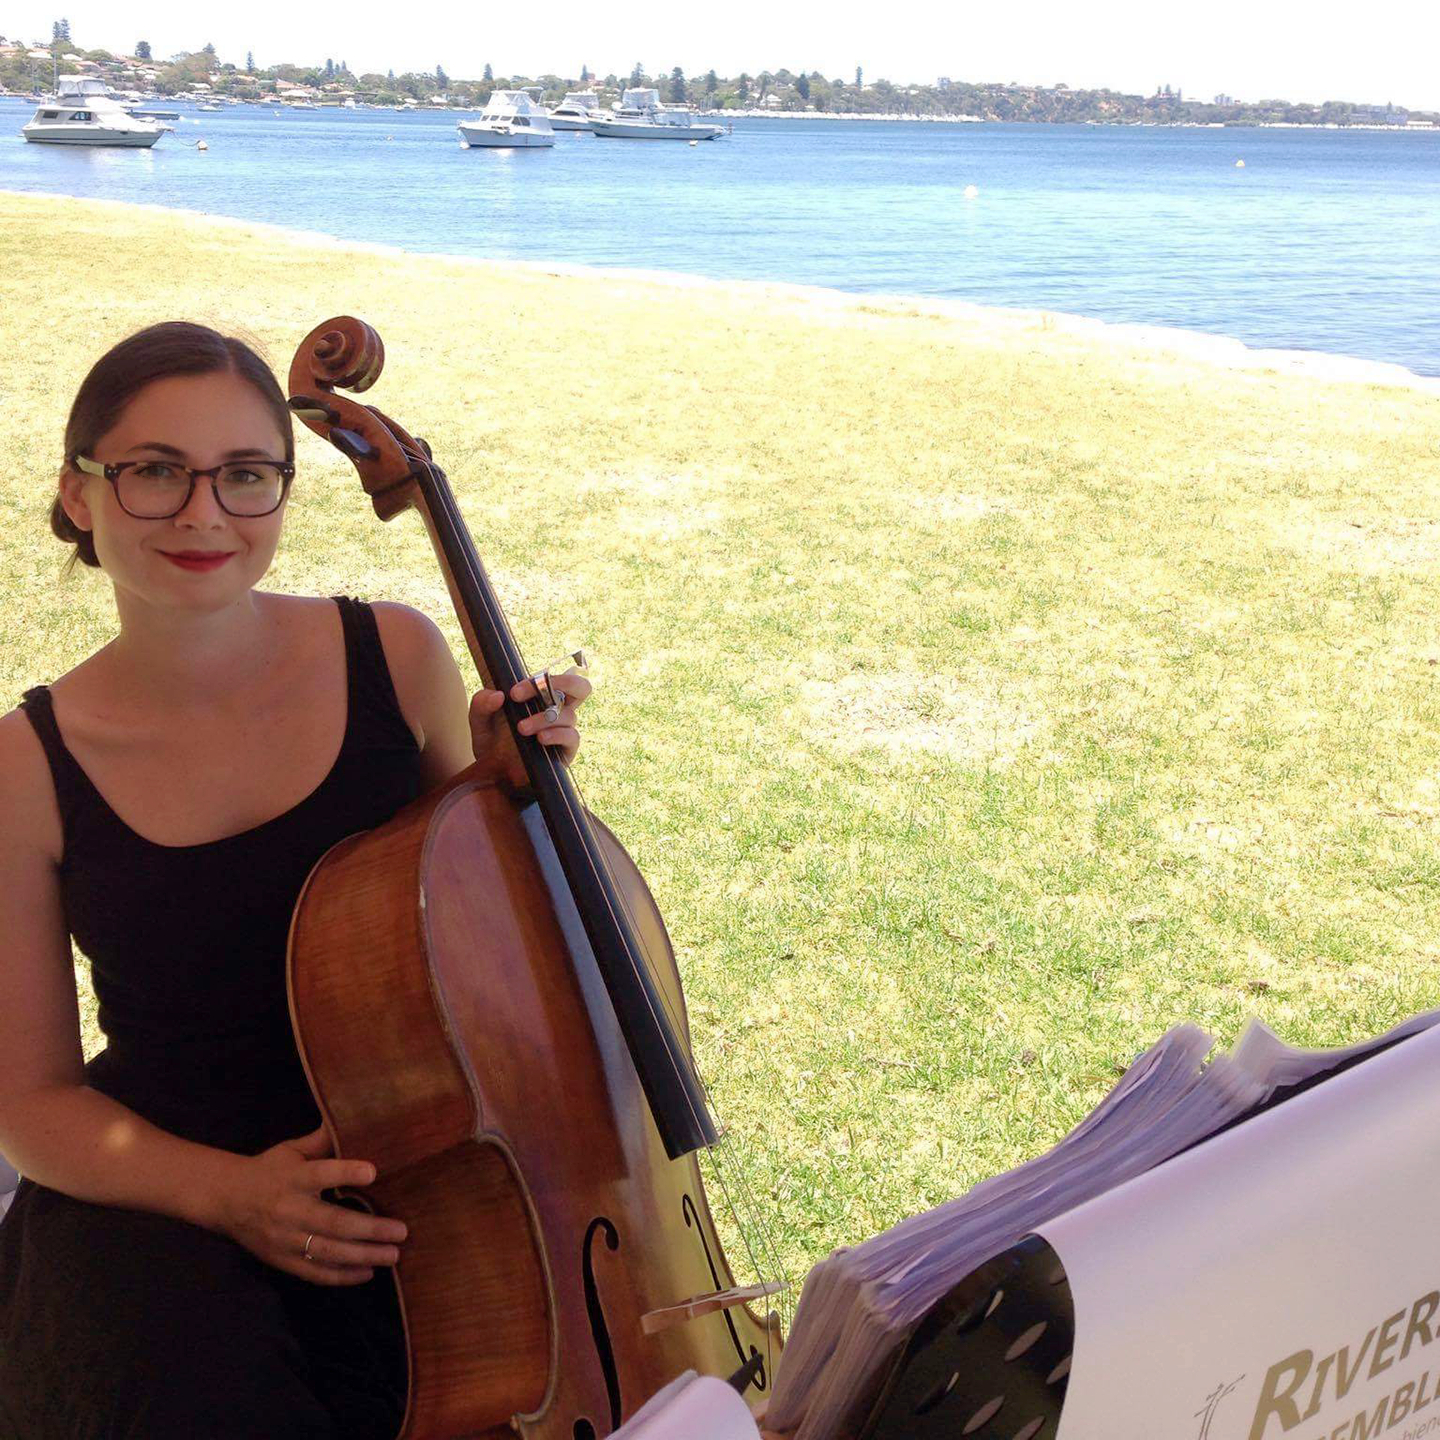 perth-function-string-music-hire-wedding-riverside-musiciansperth-function-string-music-hire-wedding-riverside-musicians-classical-contemporary-cello-cellist-swan-river